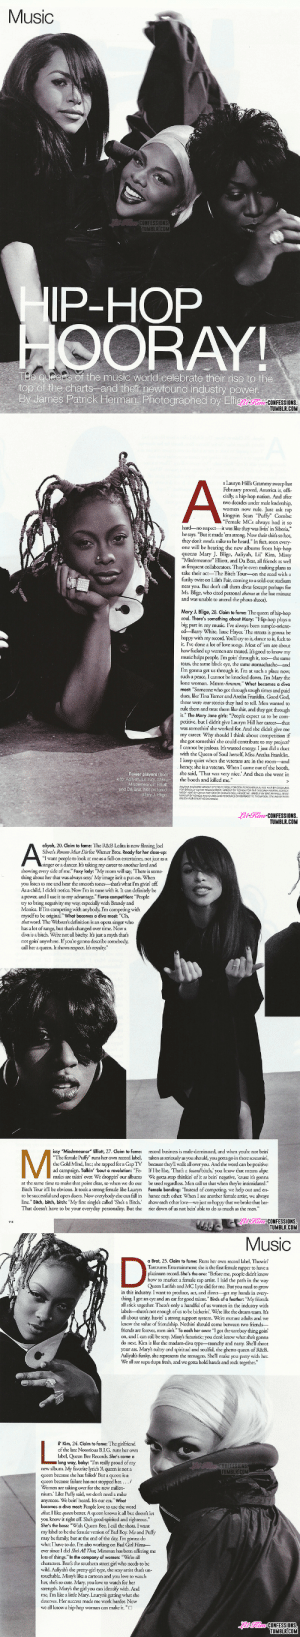 "thabeehive-deactivated20160215:  lil' kim, aaliyah, missy elliott,  da brat photographed by elfie semotan for the august 1999 issue of elle magazine. : Music  CONFESSIONS  TUMBLRCOM  IP-HOP  HOORAY  ee q eers of the music world celebrate their rise to the  top of the charts -and ther newfound industry power  By dames Patrick Herman. Photographed by Elig-FEs  TUMBLR.COM   s Lauryn Hills Grammy sweep last  February proved, America is, offi.  cially, a hip-hop nation. And after  two decades under male leadership,  women now rule. Just ask rap  kingpin Sean ""Puffy"" Combs  ""Female MCs always had it so  hard-no respect-it was like thcy was livin' in Siberia,  he says. ""But it made 'em strong. Now their shit's so hot,  they dont needa mike to be heard."" In fact, soon every  one will be hearing the new albums from hip-hop  queens Mary J. Blige, Aaliyah, Lil' Kim, Missy  ""Misdemeanor"" Elliott, and Da Brat, all friends as well  as frequent collaborators. They're even making plans to  take their act-The Bitch Tour-on the road with a  funky twist on Lilith Fair, coming to a sold-out stadium  near you. But dont call them divas (except perhaps for  Ms. Blige, who cited personal drama at the last minute  and was unable to attend the photo shoot).  Mary J. Blige, 28. Claim to fame: The queen of hip-hop  soul. There's something about Mary: ""Hip-hop plays a  big part in my music. I've always been sample-orient  ed-Barry White, Isaac Hayes. The strcets is gonna be  happy with my record. You'll cry to it, dance to it, fuck to  it. I've done a lot of love songs. Most of'em are about  how fucked up women are treated. It's good to know my  music helps people. Im goin' through it, too-the same  tears, the same black eye, the same stomachachc and  I'm gonna get us through it. I'm at such a place now,  such a peace, I cannot be knocked down. Im Mary the  lone woman. Mmm-hmmm,"" What becomes a diva  most: ""Someone who got through tough times and paid  dues, like Tina Turner and Aretha Franklin. Good God,  those were war storics they had to tell. Men wanted to  rule them and treat them like shit, and they got through  it."" The Mary Jane girls: ""People expect us to be com-  petitive, but I didn't give Lauryn Hill her career-that  was somethin' she worked for. And she didn't give me  my career. Why should I think about competition if  she got somethin' she could contribute to my project?  I cannot be jealous. It's wasted energy. Ijust did a duet  with the Queen of Soul herself, Miss Aretha Franklin  I keep quiet when the veterans are in the room-and  honey, she is a veteran. When I came out of the booth,  she said, 'That was very nice.' And then she went in  Power players (from  eft): Aaliyah, Lil Kim, Missy  Misdemeanor"" Ellot  and Da Brat. Not pictured  the booth and killed me.  FOR CAADEY CURRY MANAGEMENT MAKEUP BY NONKA FOR TE CEBCRAHMARTIN AGENCY.  MSSY VAR DyCH NA POTTER FOR a NAS 00LL HOUSE NY, MAKEUP UY CF0G FER ELL 8RAT  l-Kim-CONFESSIONS  TUMBLR.COM   aliyah, 20. Claim to fame: The R&B Lolita is now filming Joel  Silvers Romeo Must Die for Warner Bros. Ready for her close-up:  I want people to look at me as a full-on entertainer, not just as a  singer or a dancer. It's taking my career to another level and  showing every side of me."" Foxy lady: ""My mom will say, 'There is some-  thing about her that was always sexy.' My image isnt a put-on. When  you listen to me and hear the smooth tones--that's what I'm givin' off.  As a child, I didn't notice. Now Im in tune with it. It can definitely be  a power, and I use it to my advantage."" Fierce competition: ""People  try to bring negativity my way, especially with Brandy and  Monica. If Im competing with anybody, I'm competing with  myselfto be original."" What becomes a diva most: ""Oh,  that word. The Websters definition is an opera singer who  has a lot of range, but that's changed over time. Now a  diva is a bitch. Were not all bitchy. Its just a myth thatš  not goin' anywhere. If you're gonna describe somebody,  call her a queen.I shows  respect.Is royaly.""  issy ""Misdemeanor"" Elliott, 27. Claim to fame: record business is male-dominated, and when yo're not bein'  The female Pufly"" runs her own record label, taken as seriously as you should, you gotta go in there screamin  the Gold Mind, Inc; she rapped for a Gap TV because they'll walk all over you. And the word can be positive:  ad campaign. Talkin' bout a revolution: ""Fe IfIbe like, 'Thats a baaad bitch,' you know that means dope.  males are takin' over. We droppin' our albums We gotta stop thinkin of it as bein' negative, 'cause it's gonna  at the same time to make that point clear, so when we do our be used regardless. Men call us that when they're intimidated.  Bitch Tour itll be obvious. It took a strong female like Lauryn Female bonding: ""Instcad of compcting, we help out and en  to be successful and open doors. Now everybody else can fall in hance cach other. When I see another female artist, we always  line."" Bitch, bitch, bitch: ""My first single's called Shes a Bitch.' show cach other love-we just so happy that we broke that bar-  That doesn't have to be your everyday personality. But the  rier down of us not ein' able to do as much as the men.""  lKimCONFESSIONS.  TUMBLR.COM  0   Music  a Brat, 25. Claim to fame: Runs her own record label, Thowin'  Tantrums Entertainment; she is the first female rapper to have a  platinum record. She's the one: ""Before me, people didnt know  how to market a female rap artist. I laid the path in the way  Queen Latifah and MC Lyte did for me. But you need to grow  in this industry. I want to produce, act, and direct -get my hands in every  thing. I got an cye and an car for good talent."" Birds of a feather: ""My friends  all stick together. There's only a handful of us women in the industry with  labels-theres not enough of us to be bickerin'. We're like the dream team. Its  all about unity, havin' a strong support system. Were mature adults and we  know the value of friendship. Nothin' should come between two friends-  friends are forever, men aint."" To each her own: ""I got the tomboy thing goini  on, and I can still be sexy. Missy's futuristic you dont know what she's gonna  do next. Kim is like the madam-diva type-raunchy and nasty. Shell shoot  your ass. Mary's sultry and spiritual and soulful, the ghetto queen of R&B  Aaliyahs funky, she represents the teenagers. Shell make you party with her.  We all are supa dupa fresh, and we gotta hold hands and rock together.""  il' Kim, 24. Claim to fame: The girlfriend  of the late Notus B.I.G. runs her own  label, Queen Bee Records. She's come a  long way, baby: ""Im really proud of my  CONFESSIONS  TUMBLRICOM  new album. My favorite lyrics 'A queen is not a  queen because she has failed/ But a queen is a  queen because failure has not stopped her..../  Women are taking over for the new millen  nium.' Like Puffy said, we dont need a mike  anymore. We bein' heard. Its our era."" What  becomes a diva most: People love to use the word  diva. I like queen better. A queen knows it all but doesnt let  you know it right off. She's good-spirited and righteous.  She's the boss: ""With Queen Bee, I call the shots. I want  my label to be the female version of Bad Boy. Me and Puffy  may be family, but at the end of the day, I'm gonna do  what I have to do. I'm also working on Bad Girl Films-  ever since I did Sheš AllThat, Miramax has been offering me  lots of things."" In the company of women: ""Were all  characters. Brats the southern street girl who needs to be  wild. Aaliyah's the pretty-girl type, the sexy artist that's un-  touchable. Missy's like a cartoon and you love to watch  her, shes so cute. Mary, you love to watch for her  rength. Mary's the girl you can identify with. And  me, Im like a little Mary. Lauryn's getting what she  deserves. Her success made me work harder. Now  we all know a hip-hop woman can make it.""O  ki- CONFESSIONS  TUMBLR COM thabeehive-deactivated20160215:  lil' kim, aaliyah, missy elliott,  da brat photographed by elfie semotan for the august 1999 issue of elle magazine."